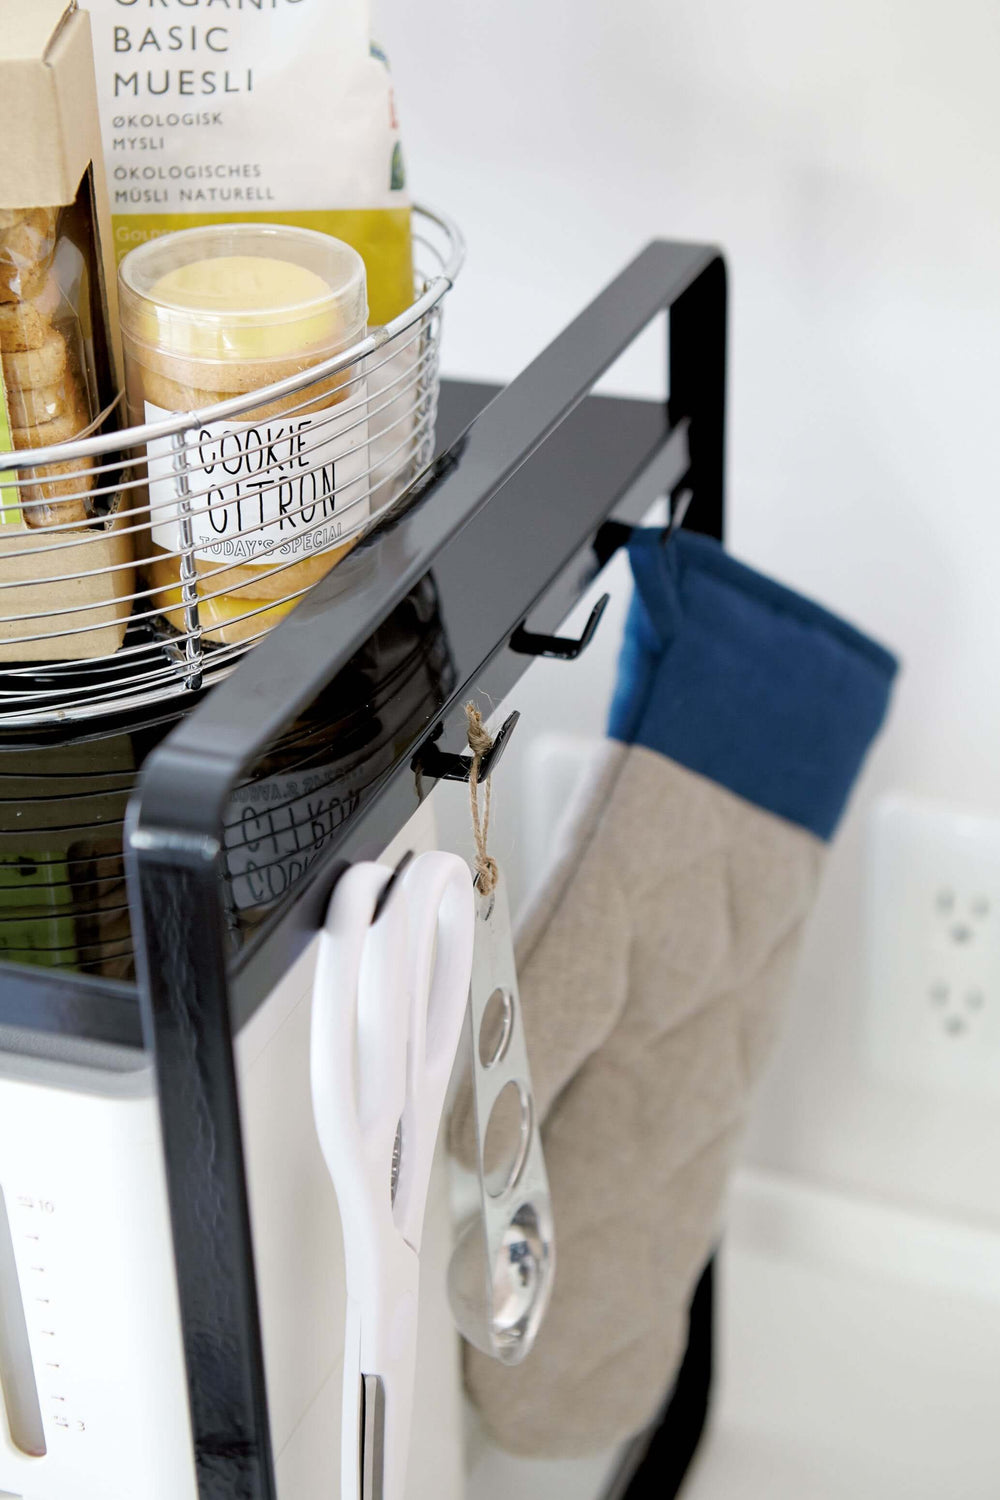 Scissors hanging from the side of a kitchen organizer by Yamazaki